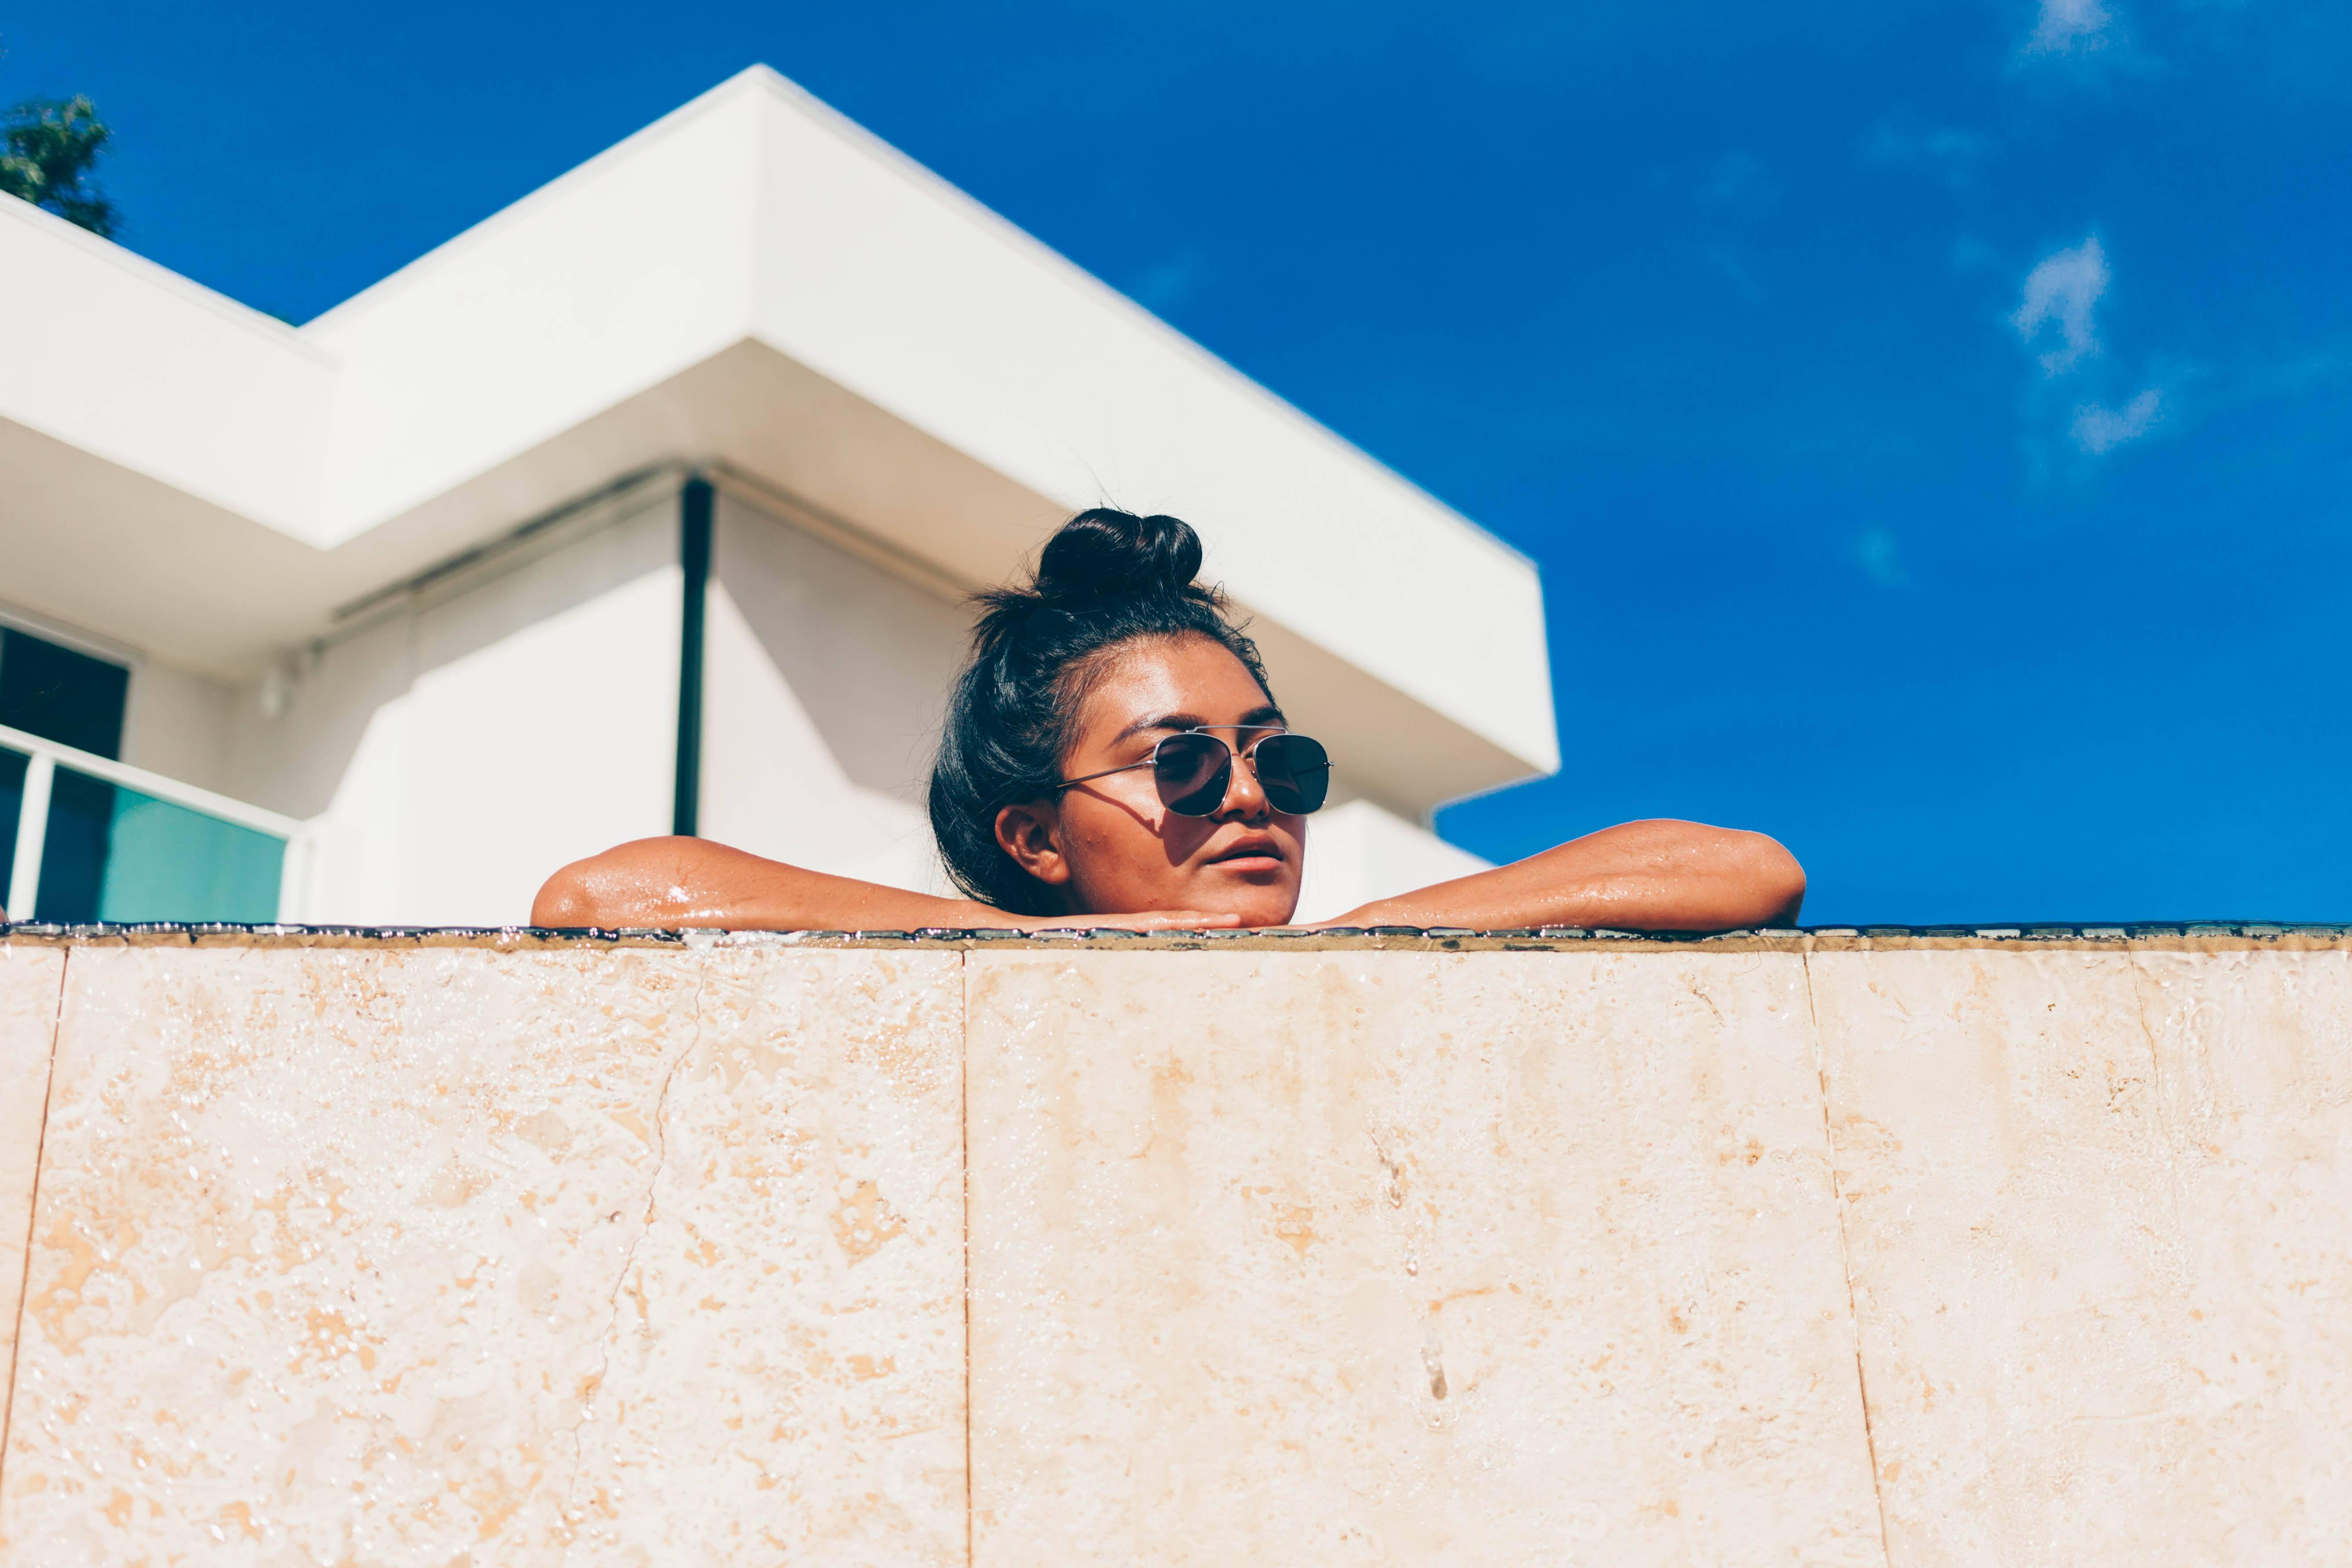 sunglasses-woman-leaning-on-wall